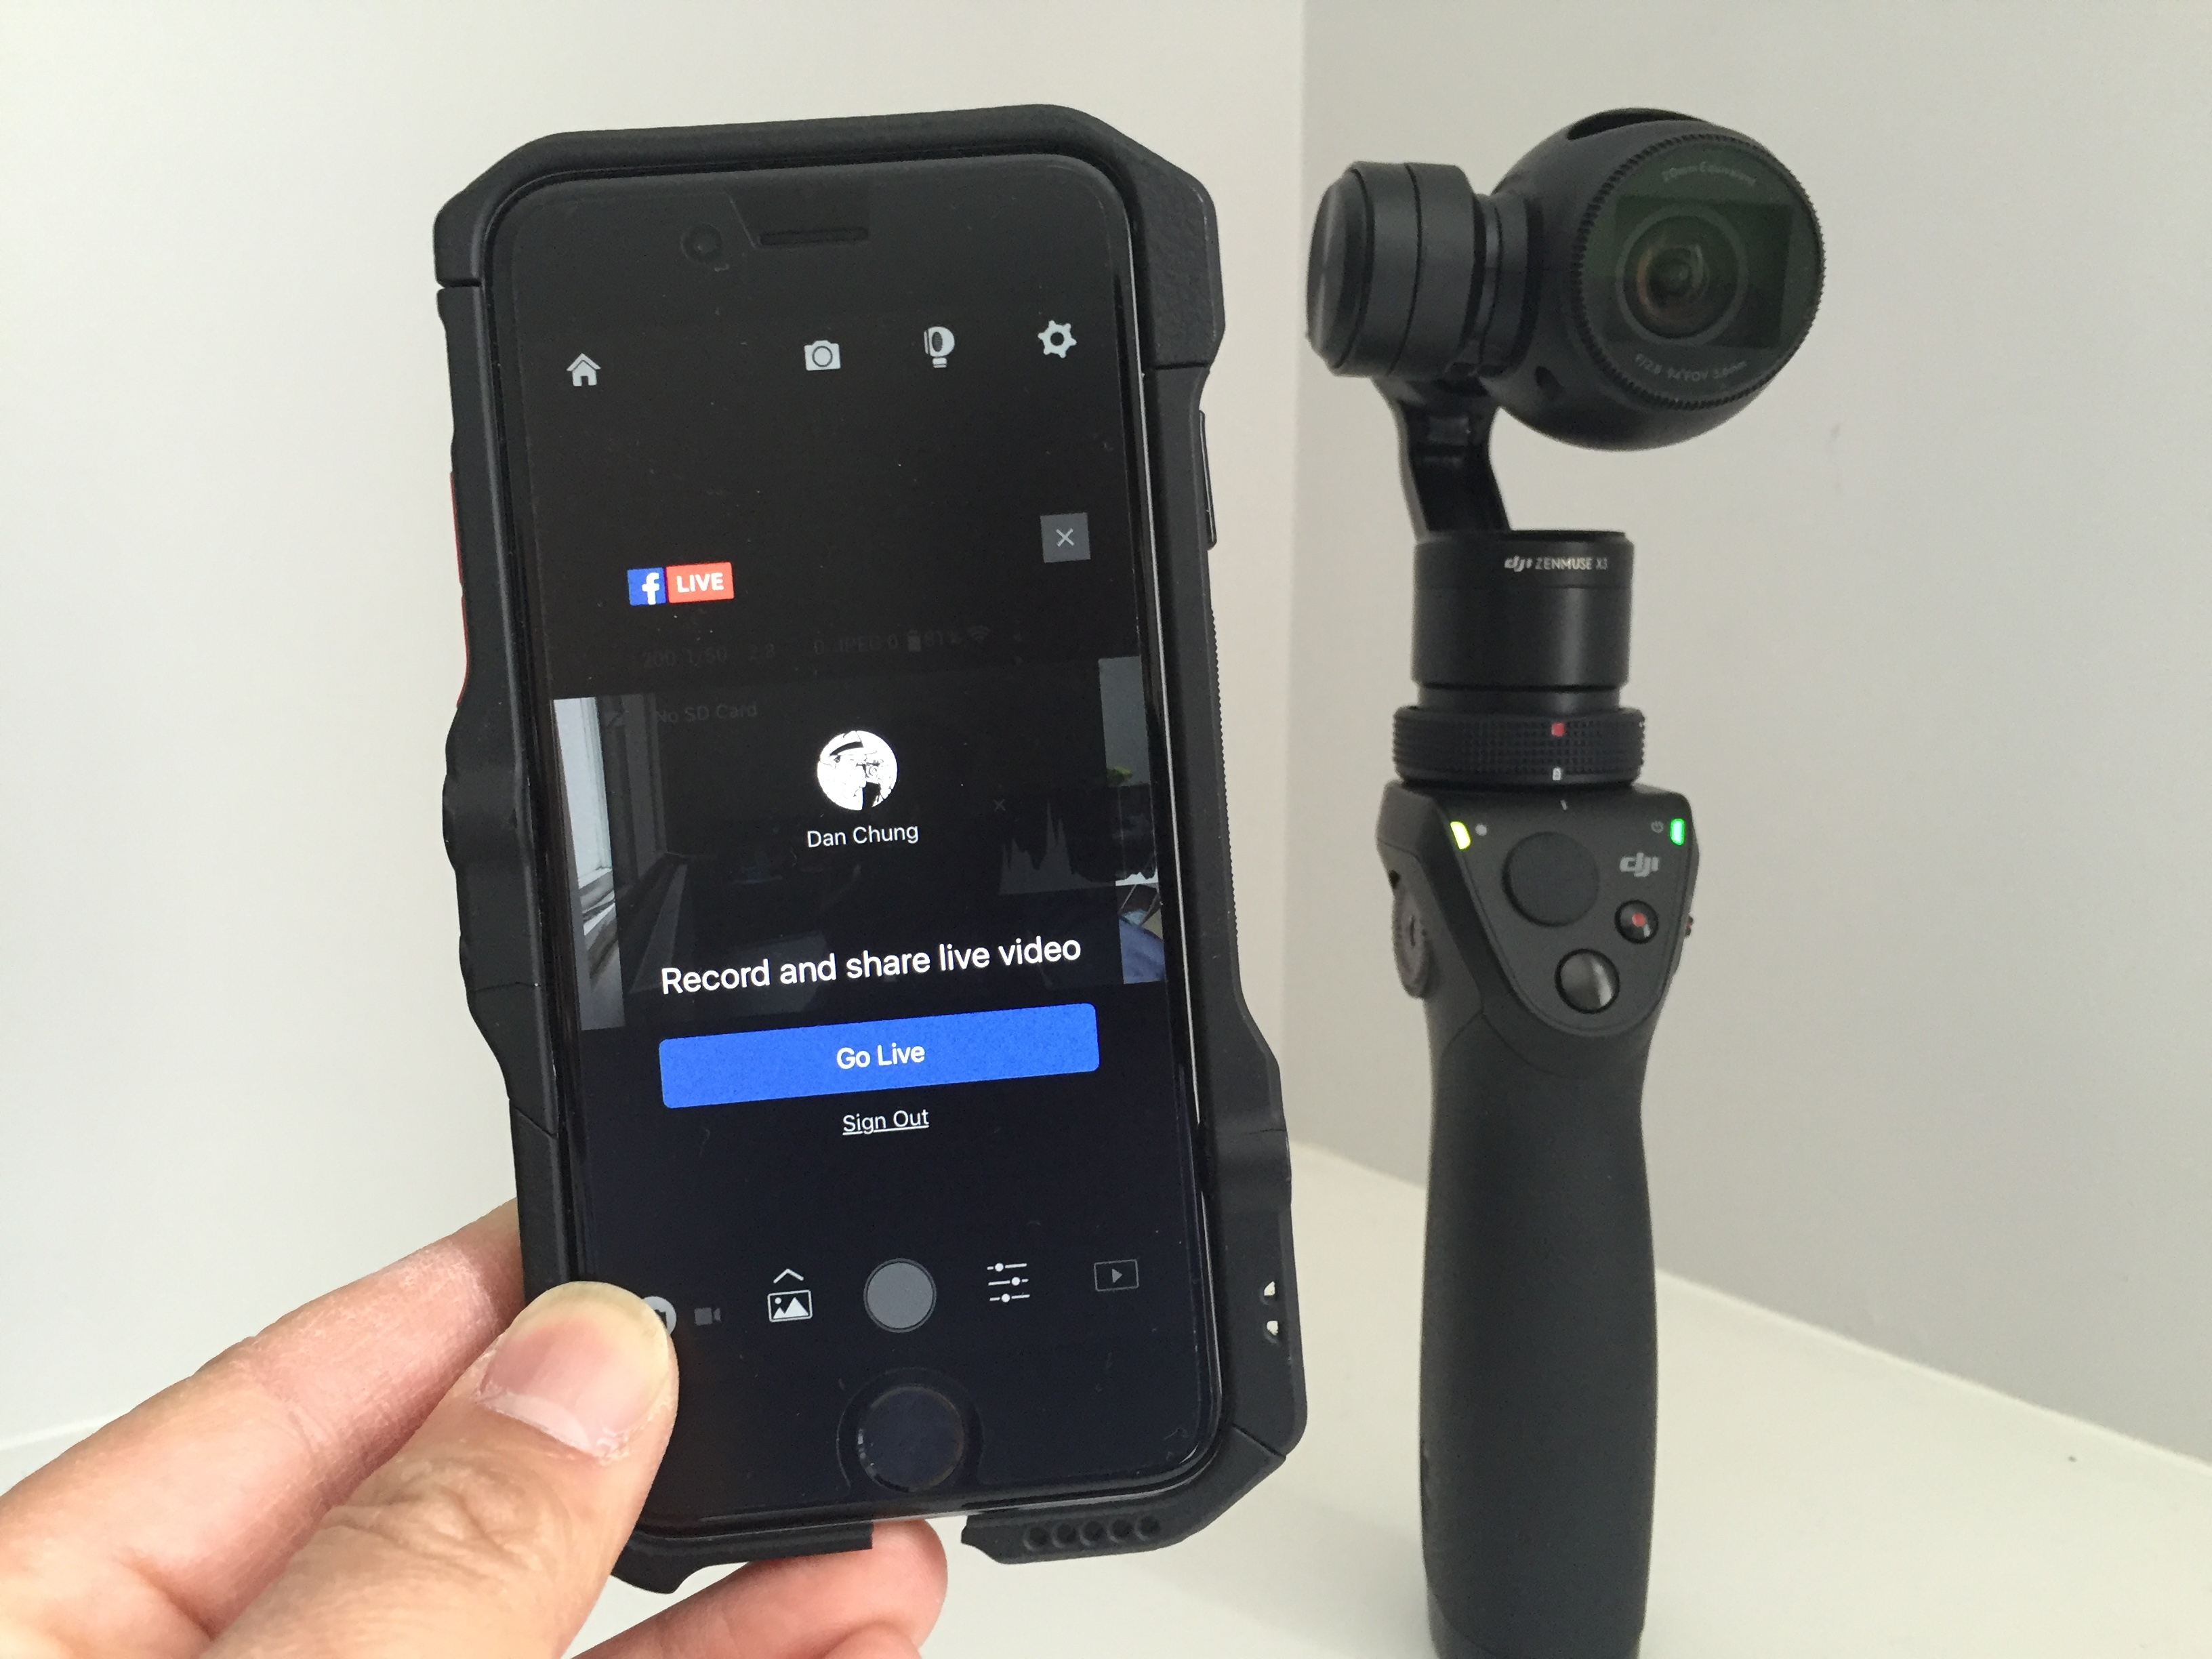 DJI adds Facebook Live support to the DJI Go iOS app - Newsshooter